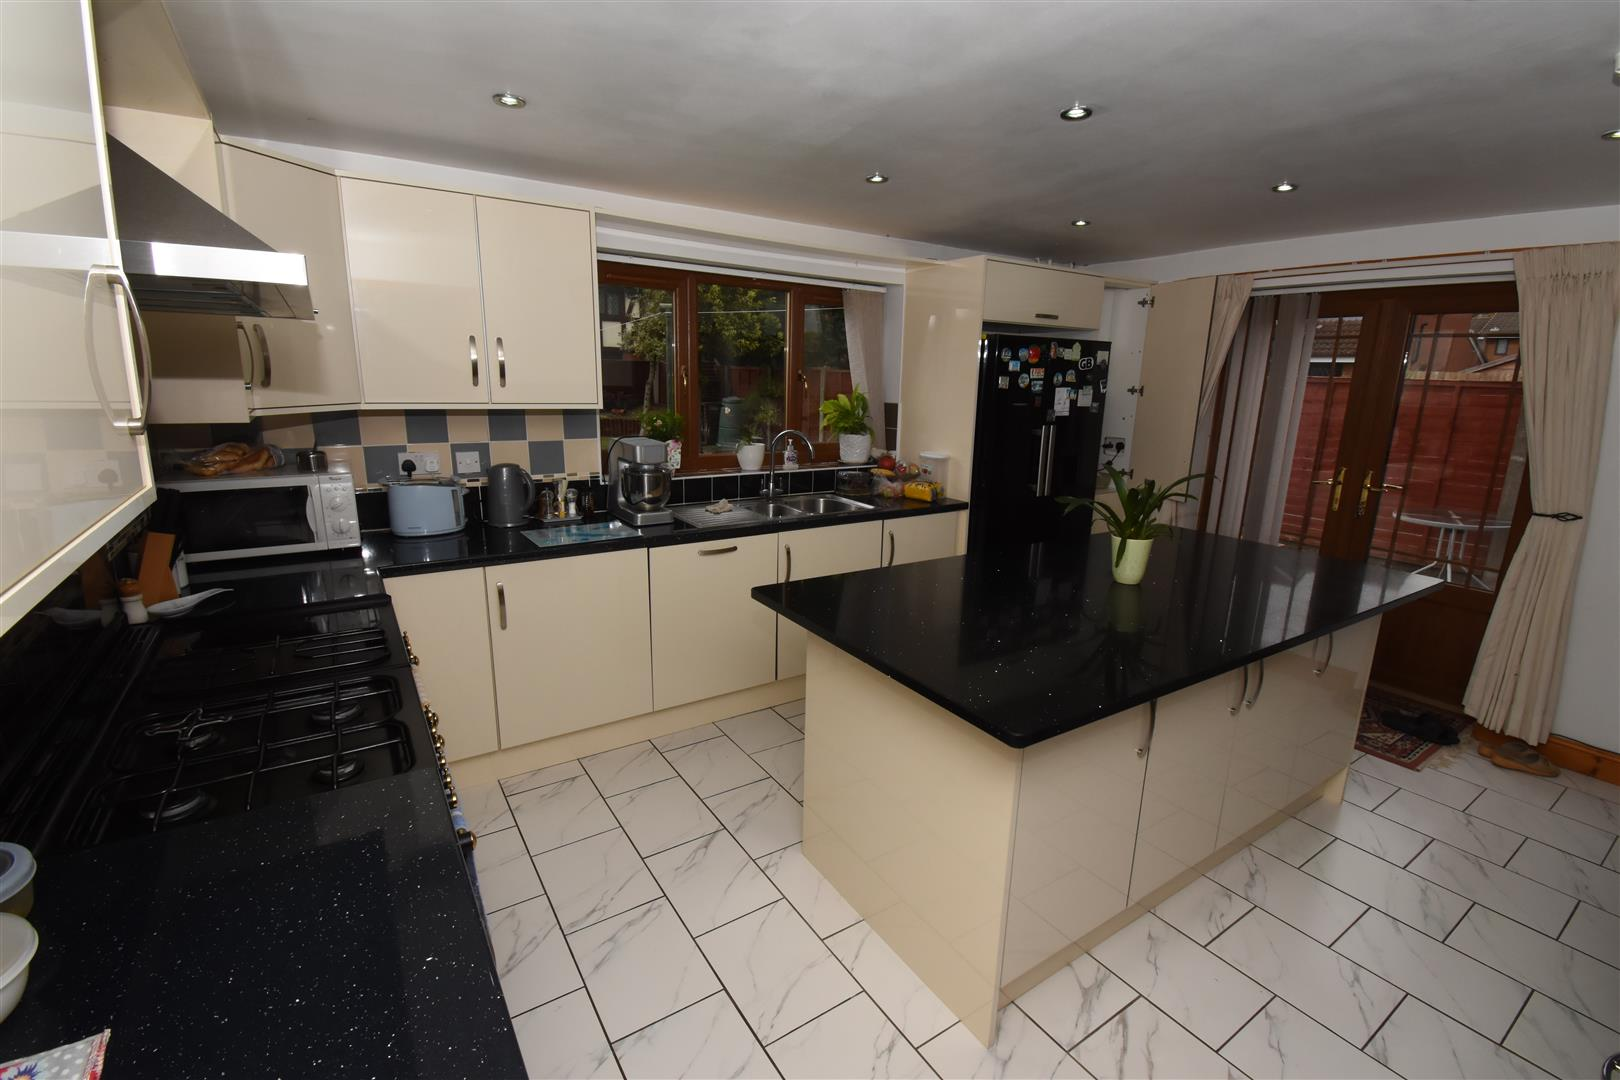 5 bed house for sale in Johnson Close, Ward End, Birmingham 8